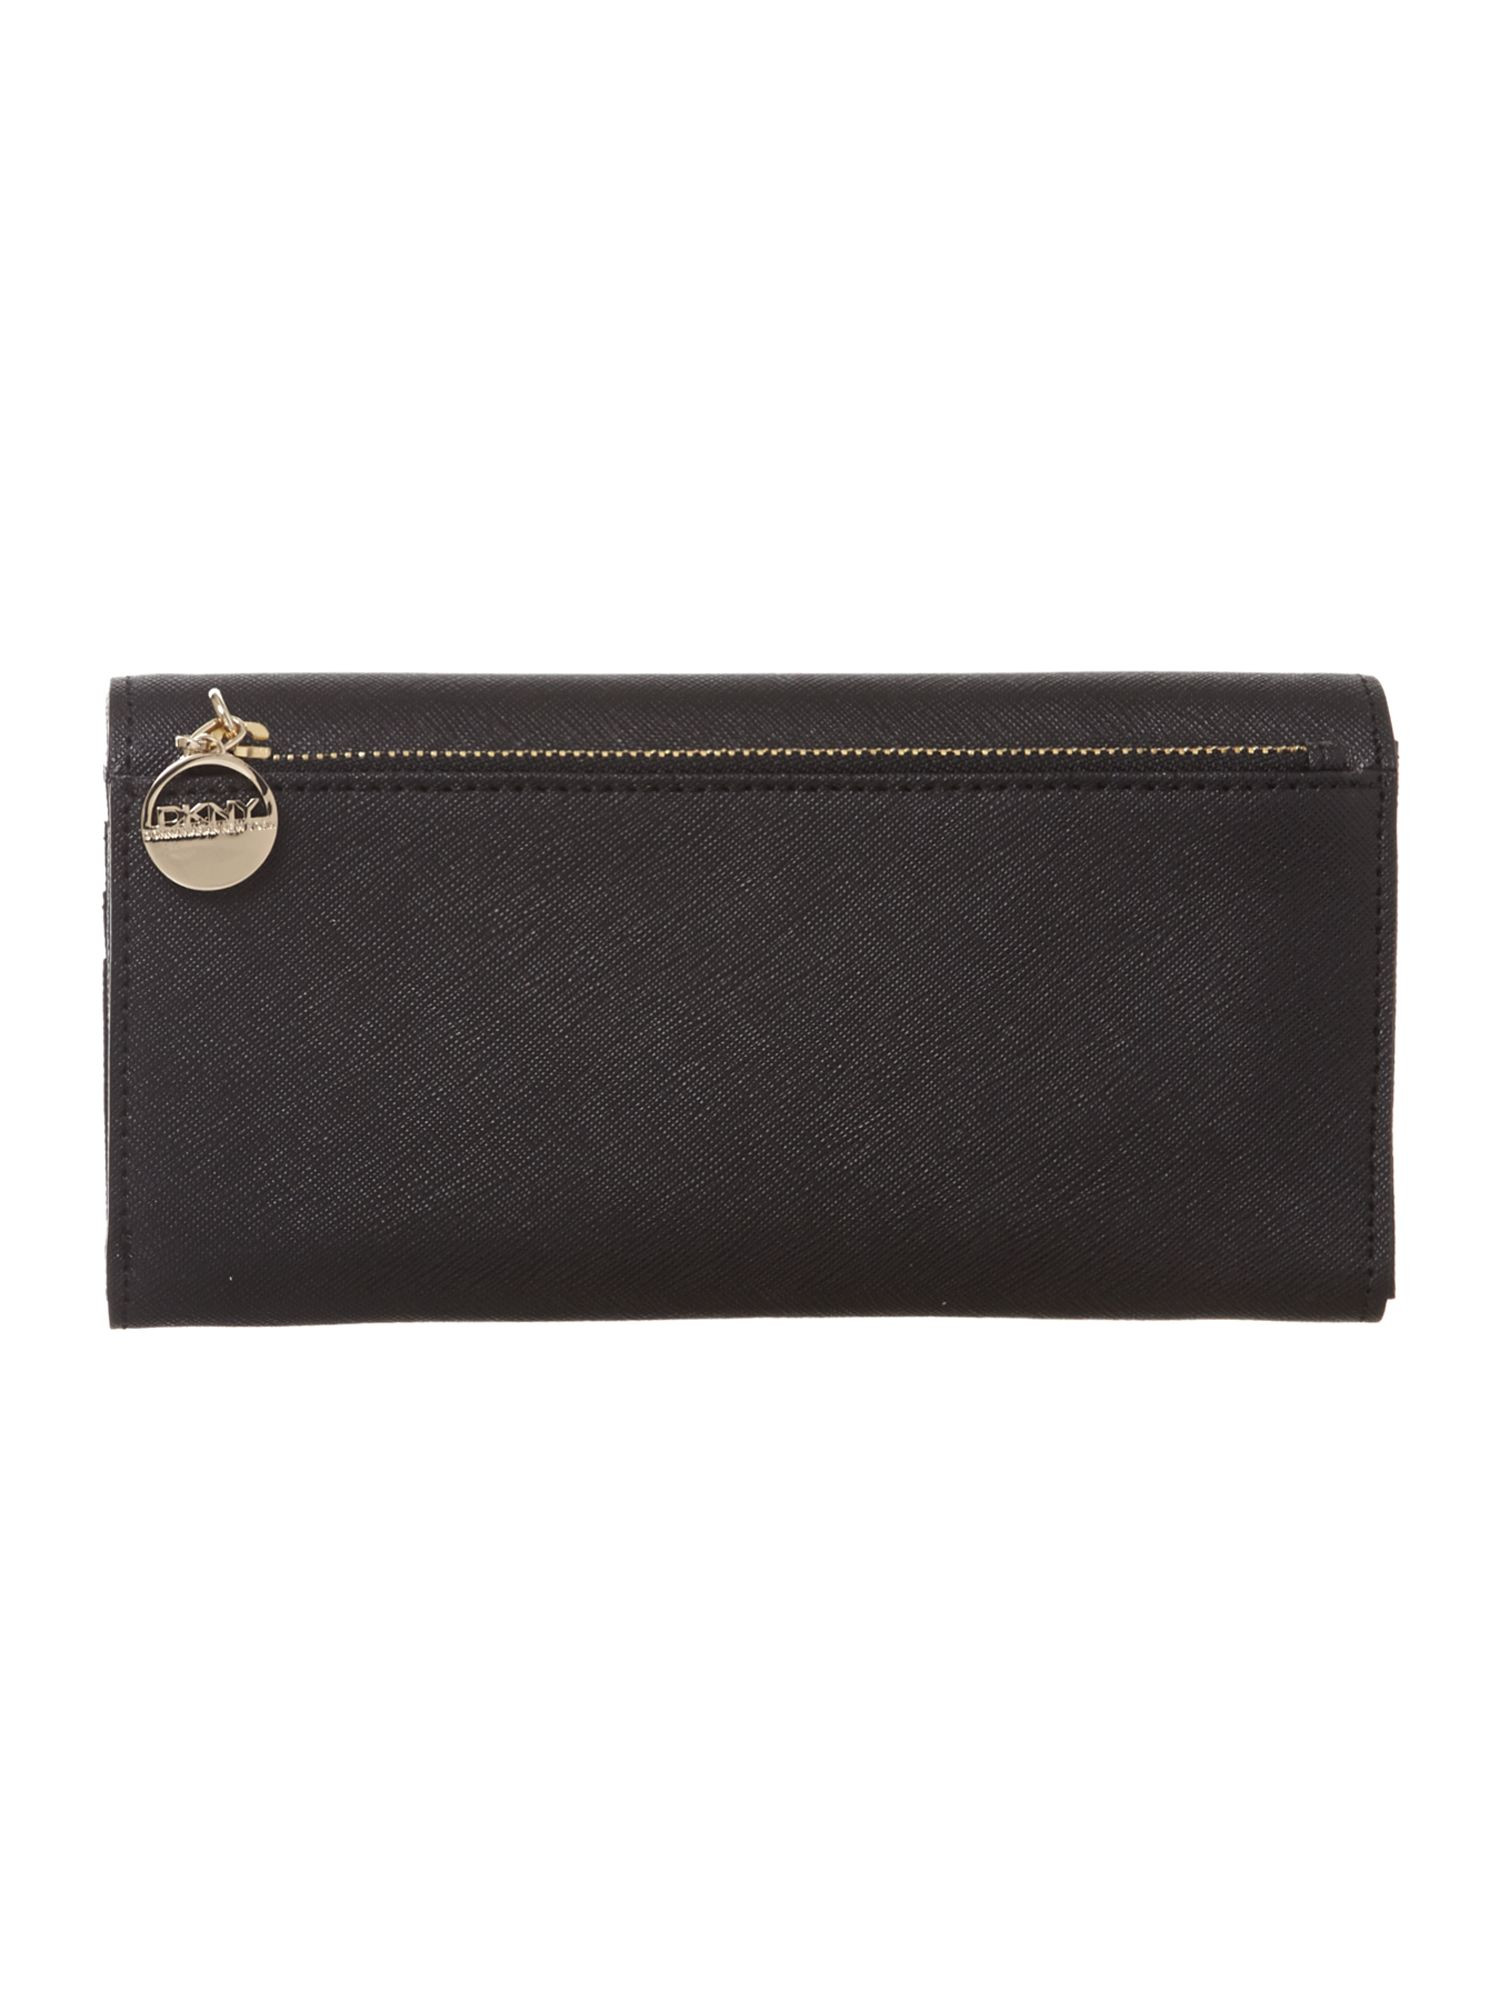 Saffiano black large flap over purse